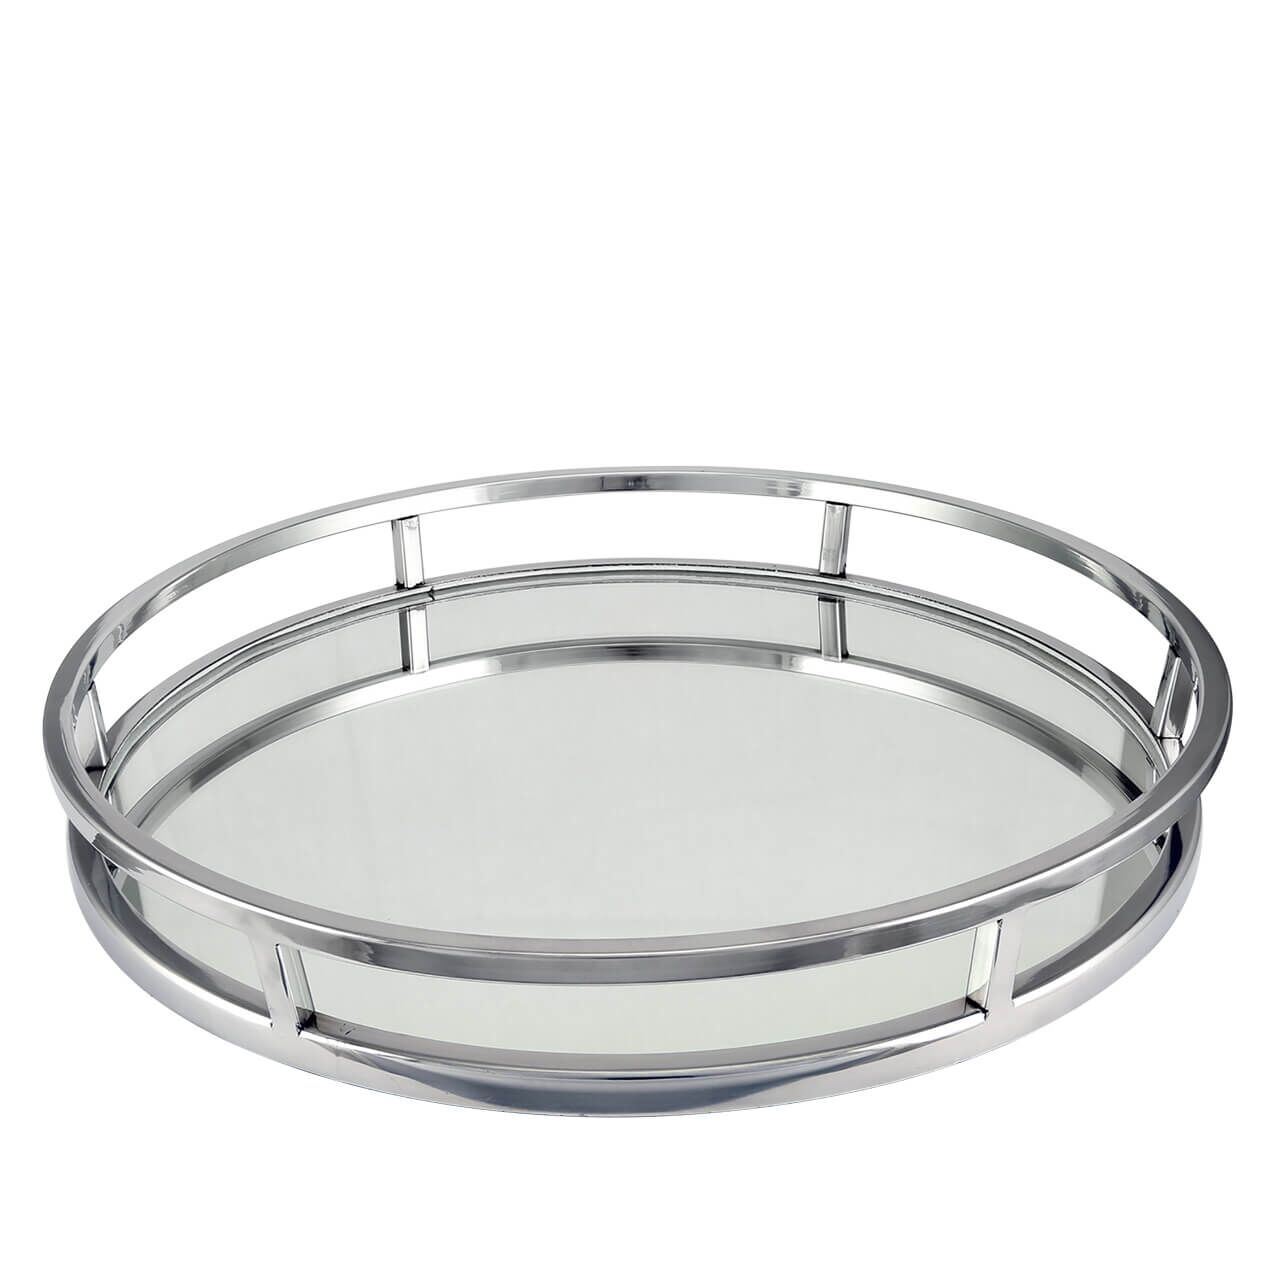 Large Round Nickel Mirror Tray Hodsons